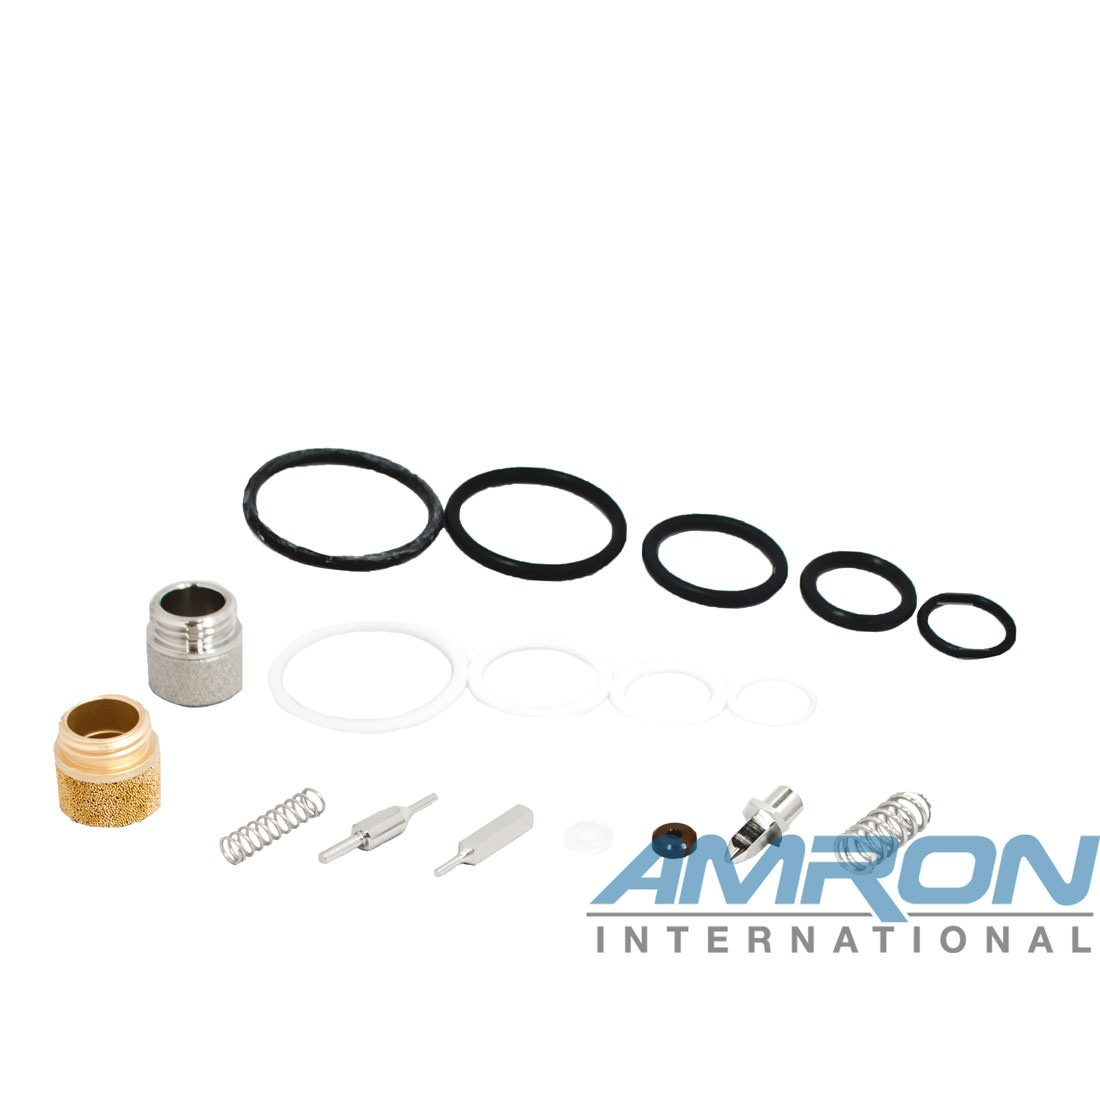 TESCOM Standard Regulator Repair Kit 389-1449